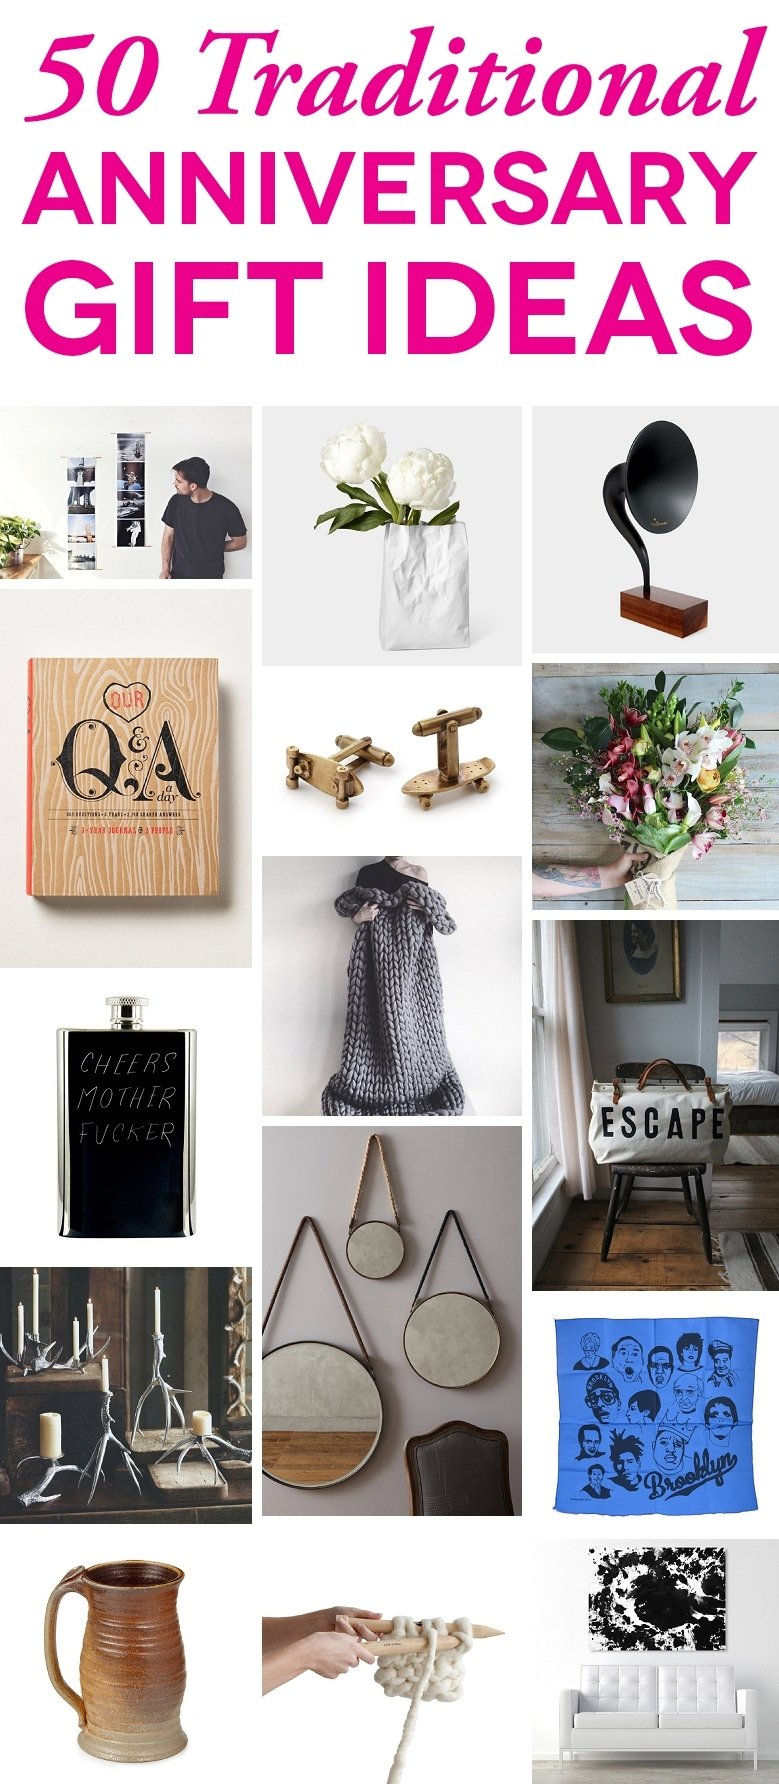 10 Ideal Anniversary Gift Ideas For Husband traditional anniversary giftsyear a practical wedding 9 2020